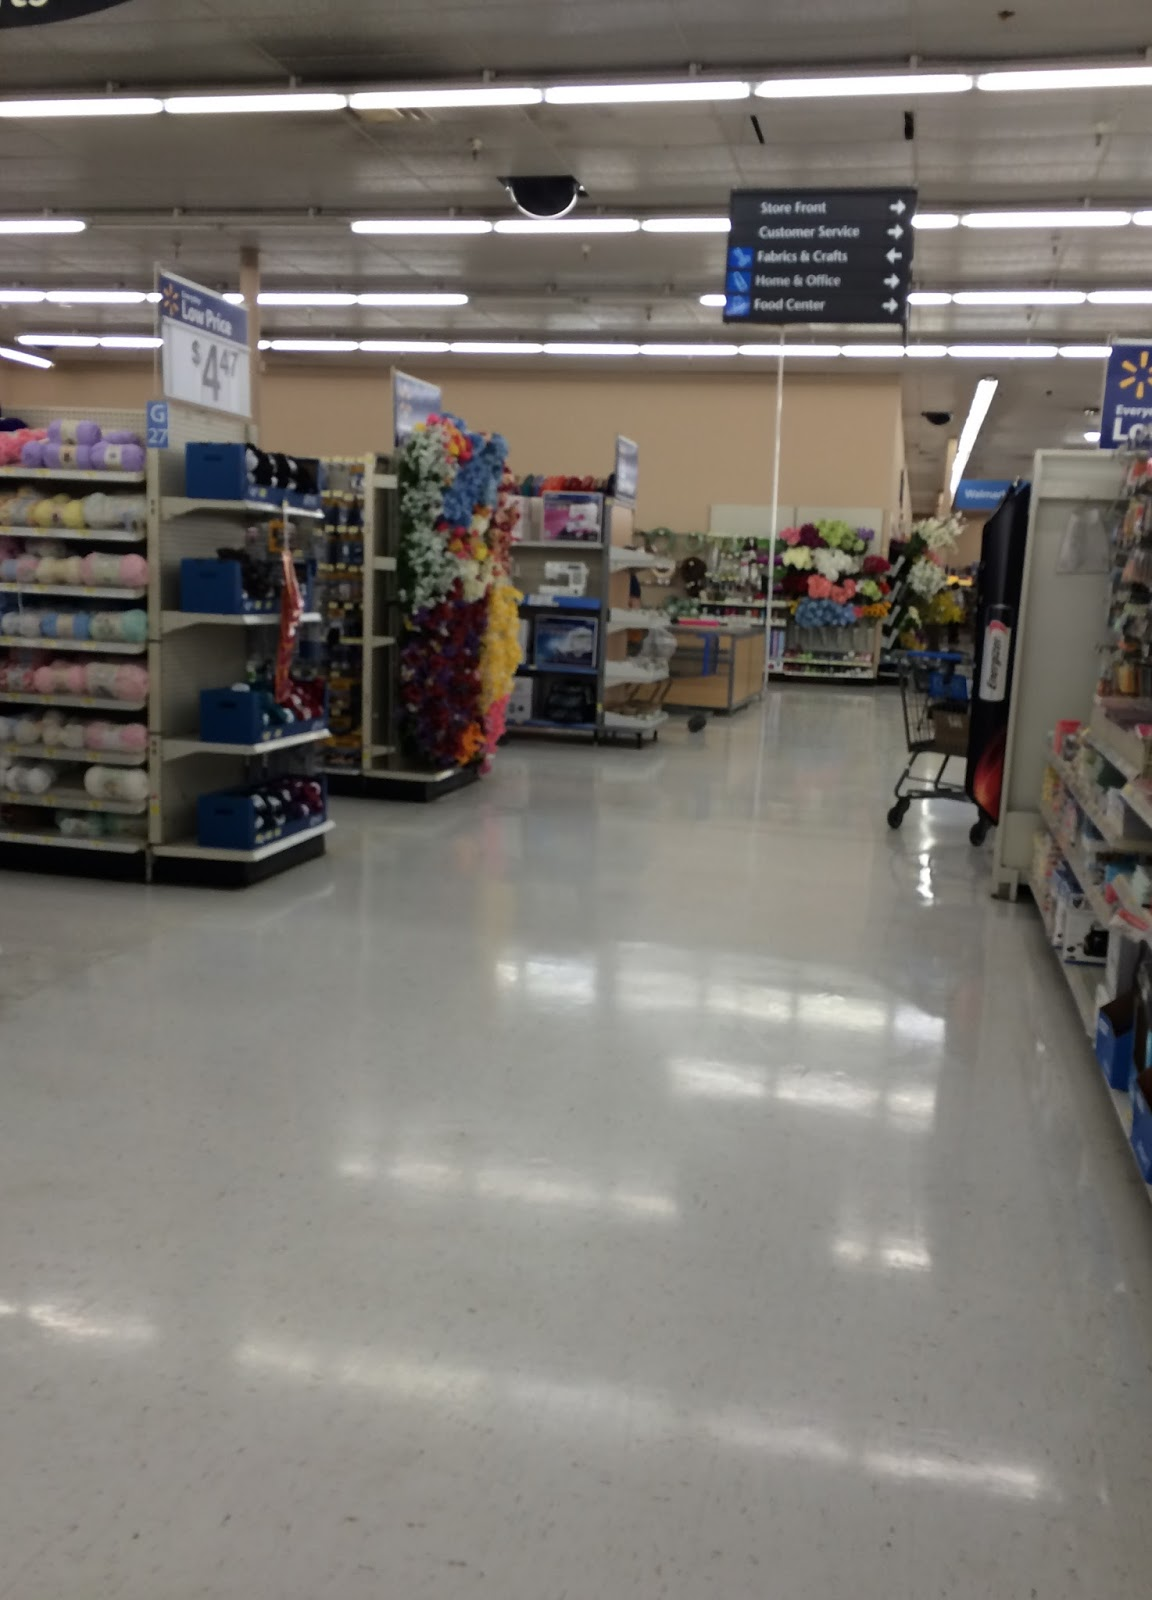 kmart vs wal mart What are the major reasons that wal-mart has been more successful than kmart.